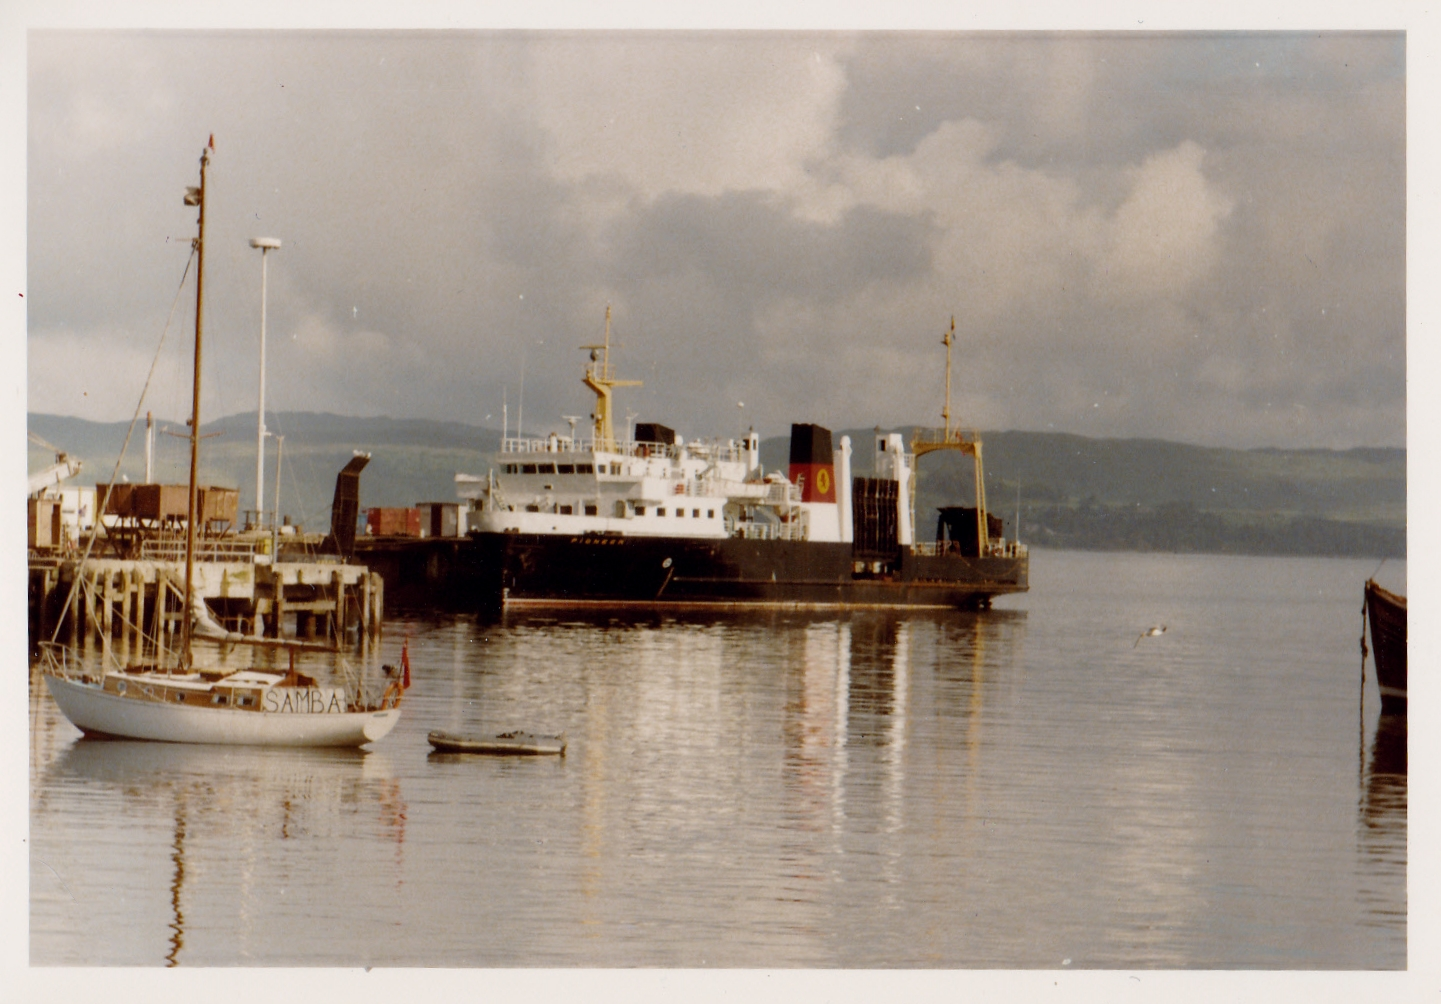 Pioneer and Arran at Mallaig (Jim AIkman Smith)